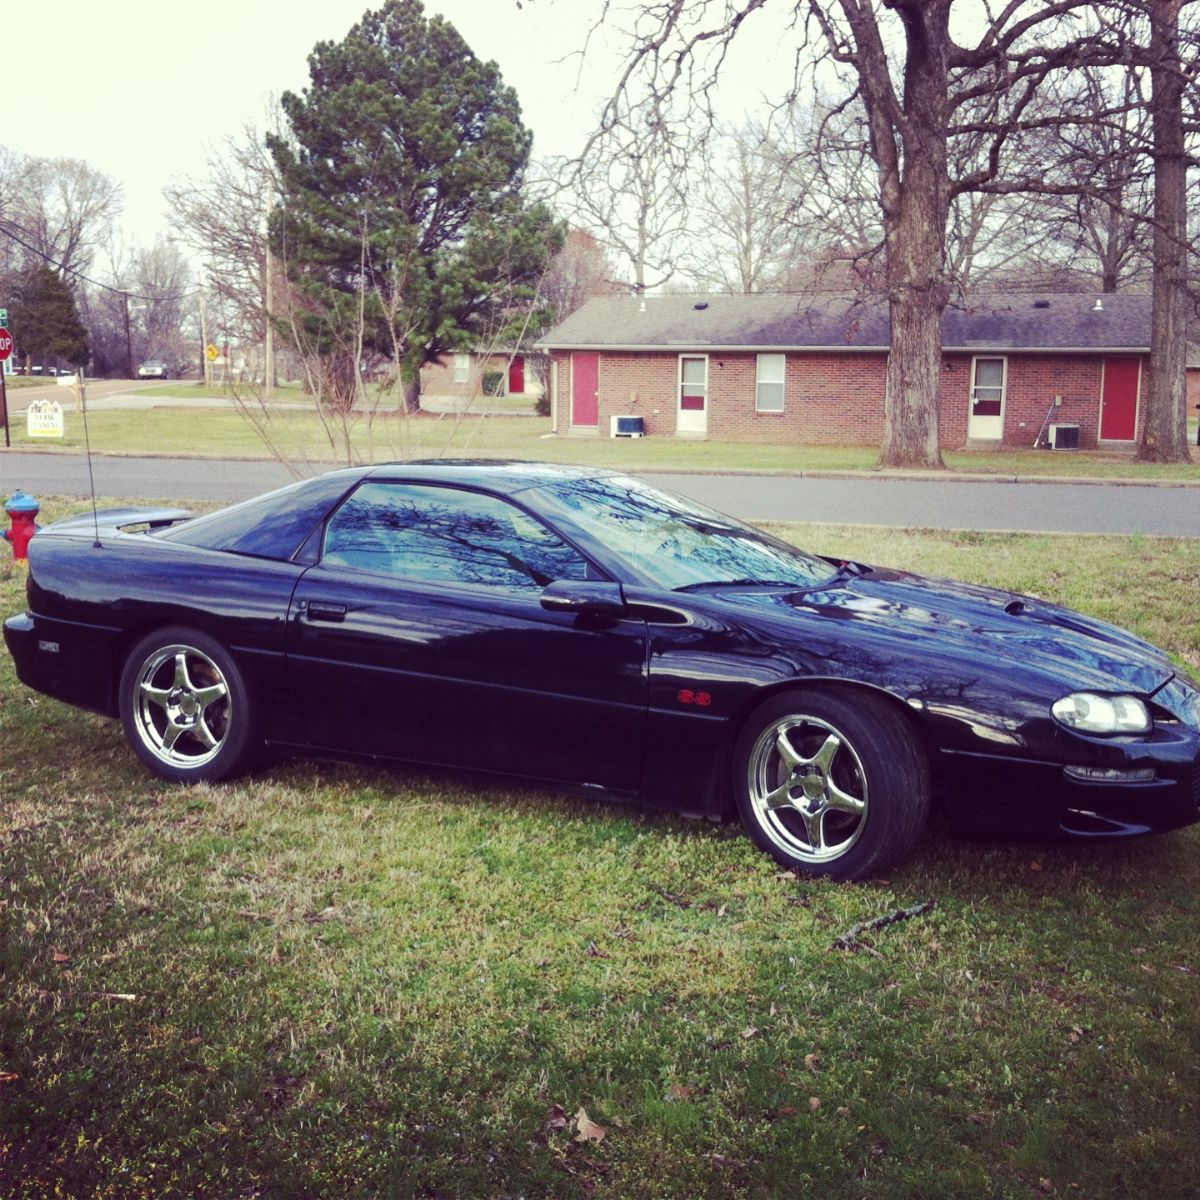 1998 chevrolet camaro ss slp for sale henderson nevada. Black Bedroom Furniture Sets. Home Design Ideas